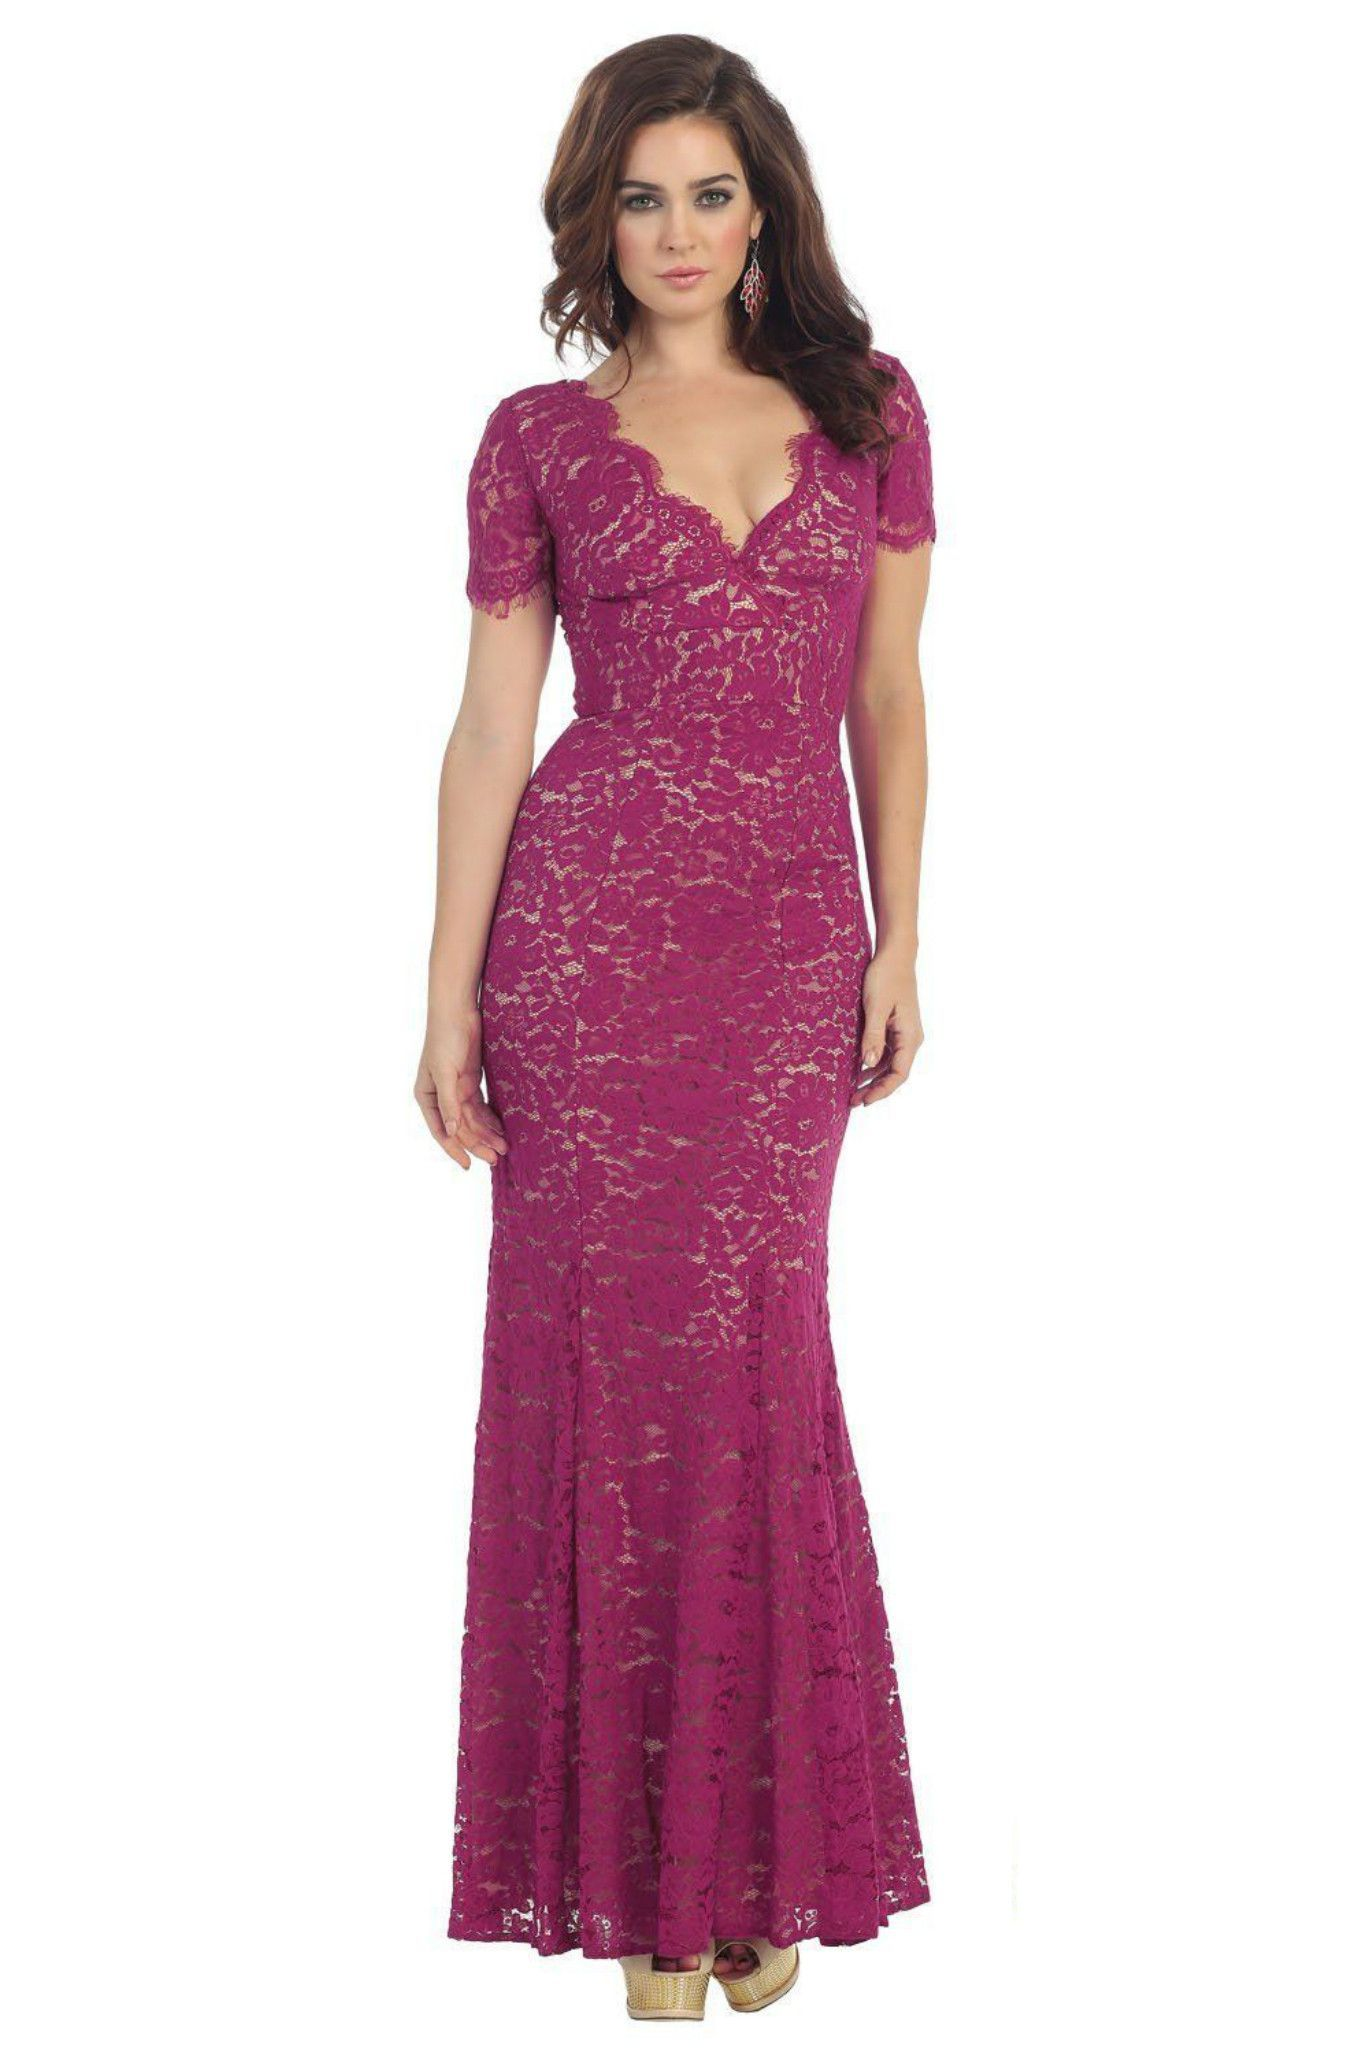 Unique Elegant Long Magenta Formal Mother of the Bride Dress ...